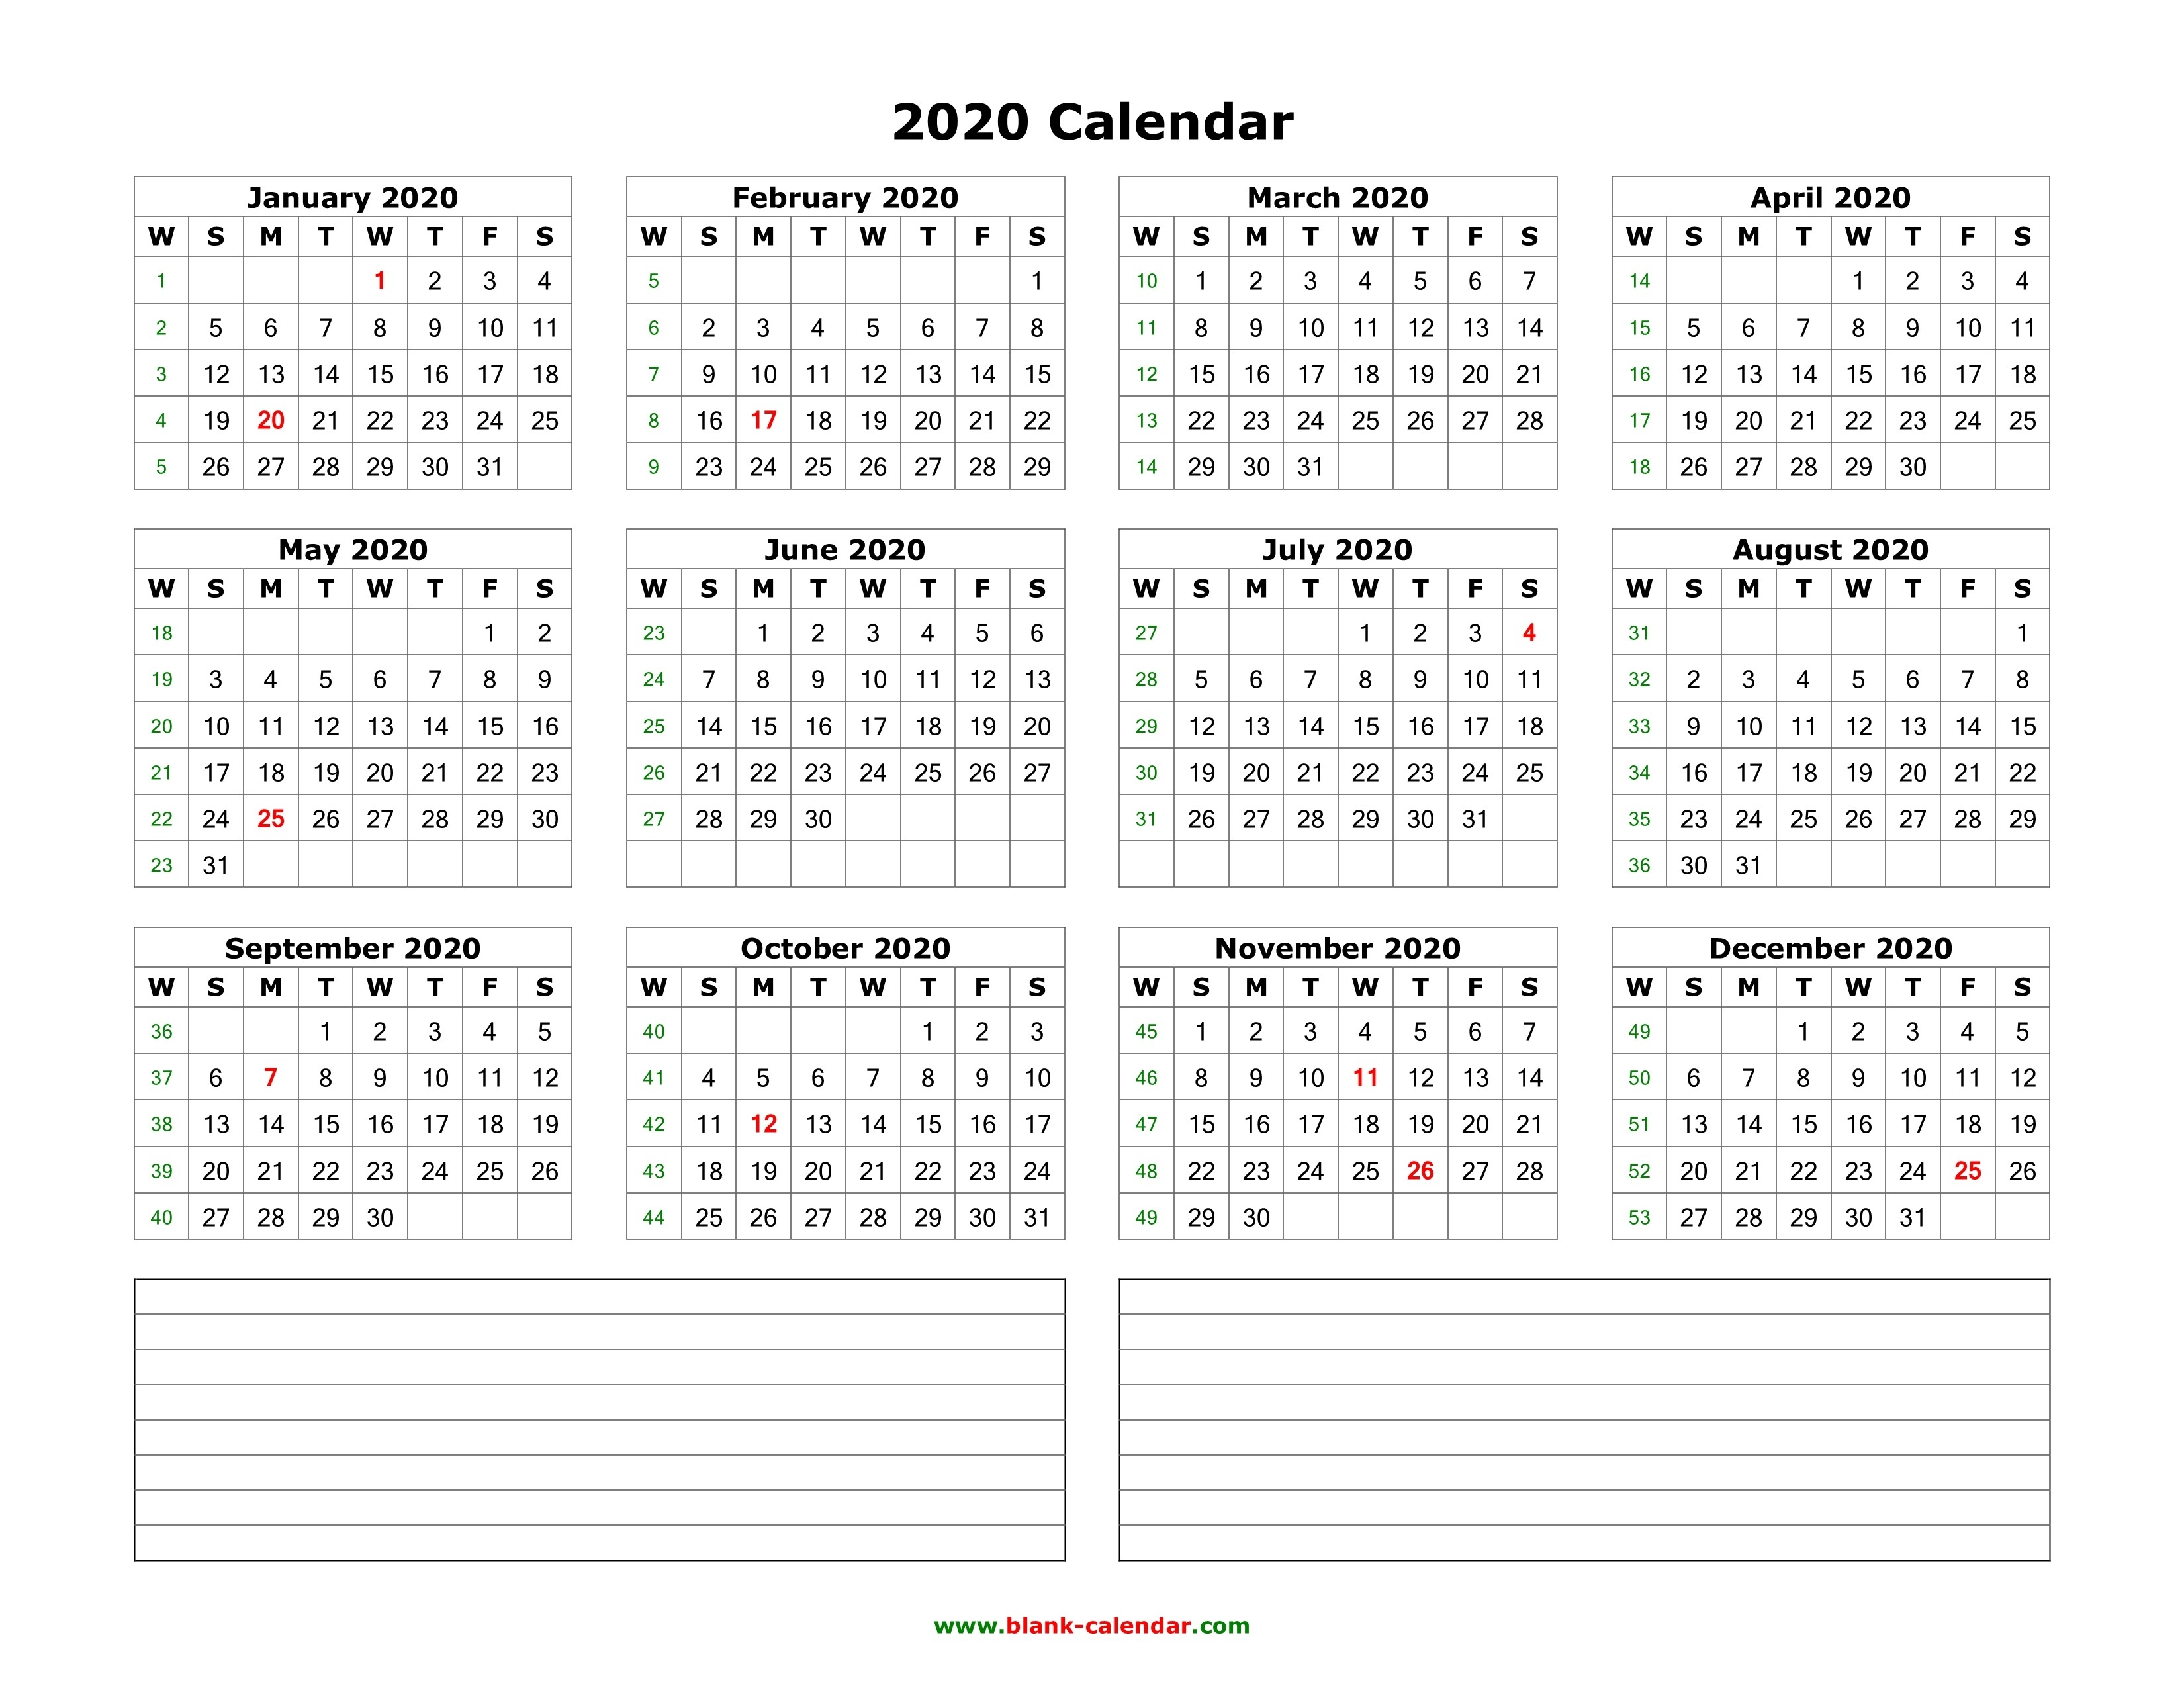 Download Blank Calendar 2020 With Space For Notes (12 Months-12 Month Blank Calendar 2020 Printable